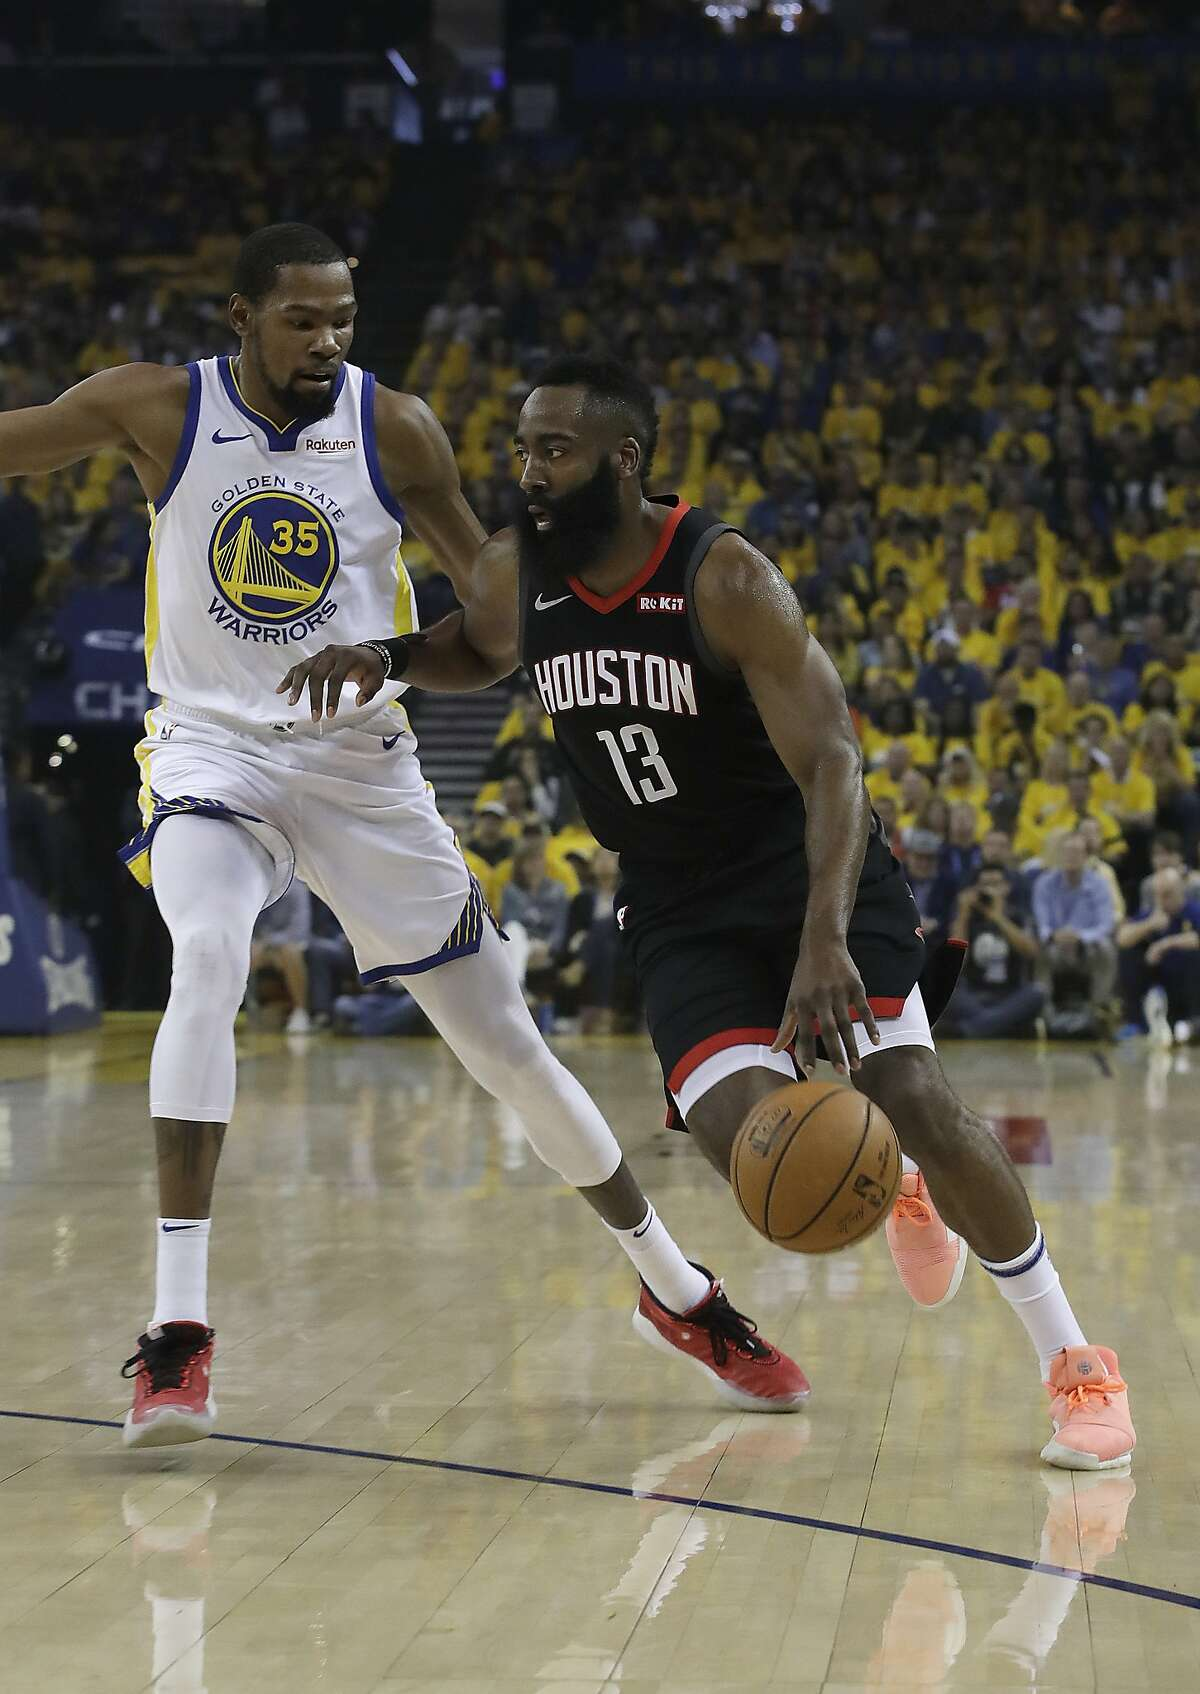 Houston Rockets guard James Harden (13) drives against Golden State Warriors forward Kevin Durant (35) during the first half of Game 1 of a second-round NBA basketball playoff series in Oakland, Calif., Sunday, April 28, 2019. (AP Photo/Jeff Chiu)